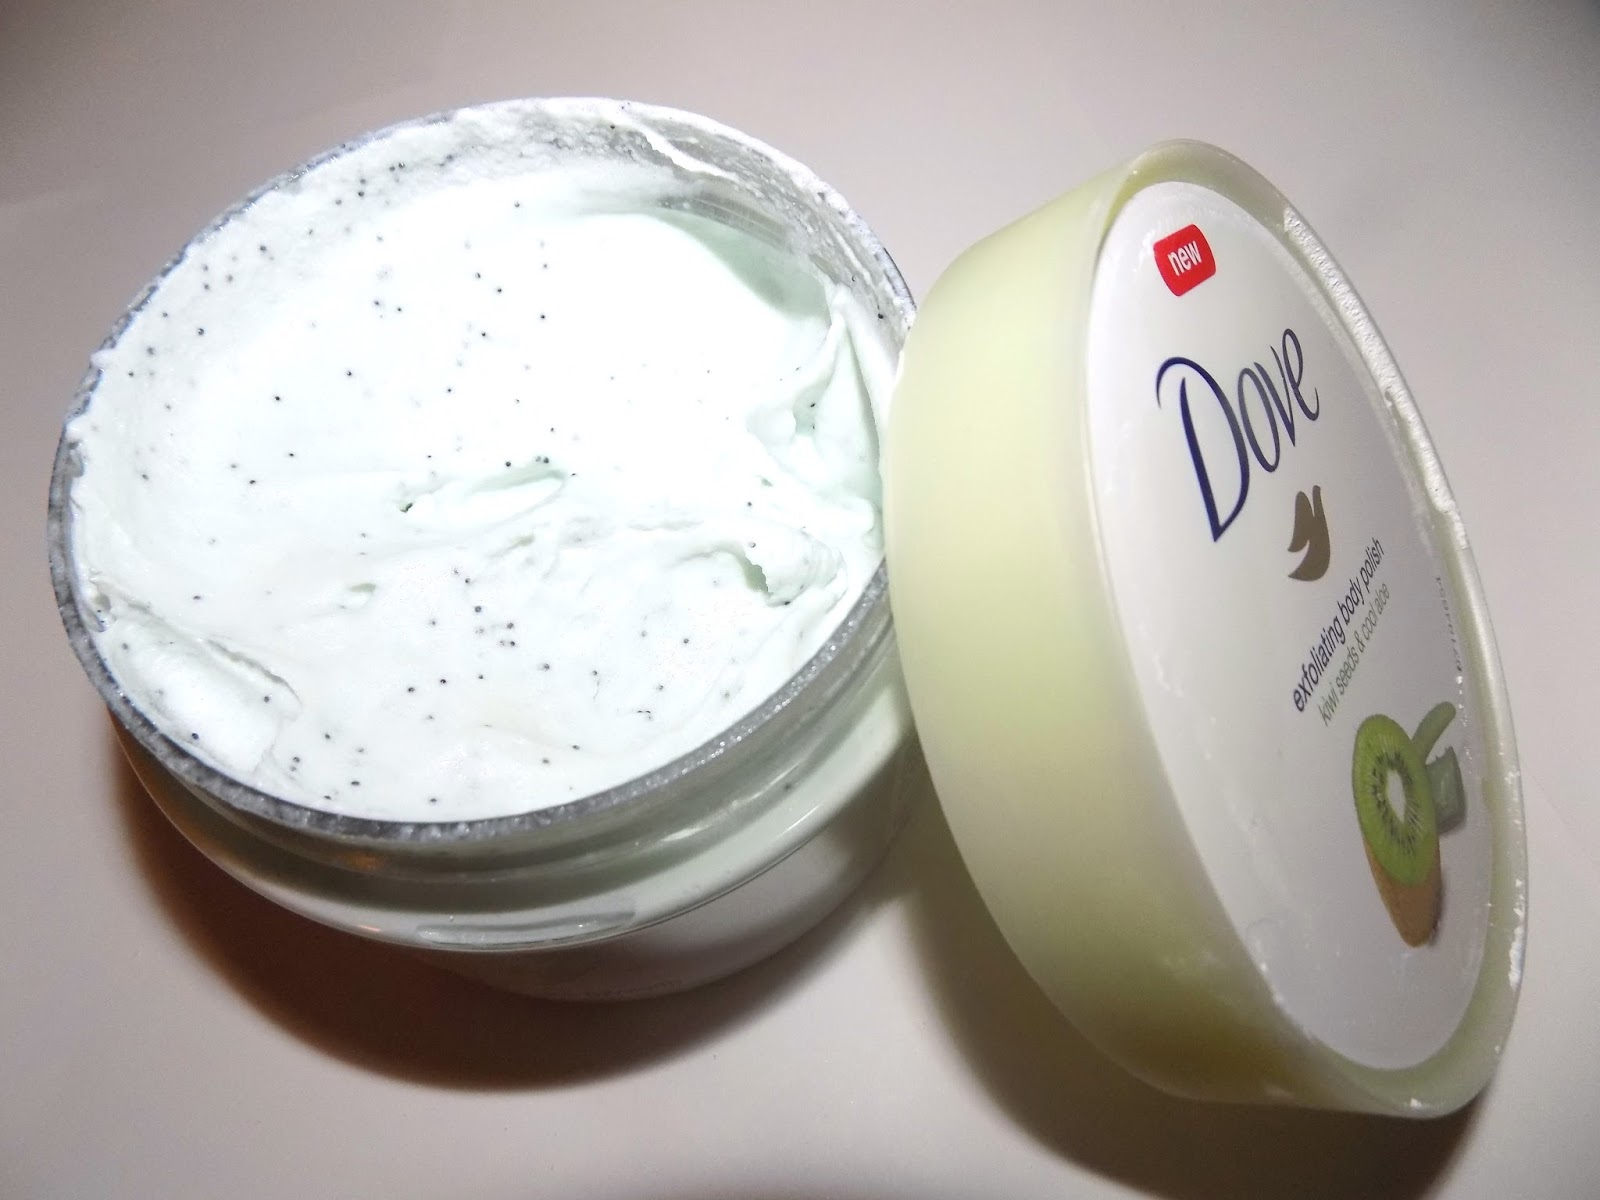 The Beauty Alchemist Dove Exfoliating Body Polish